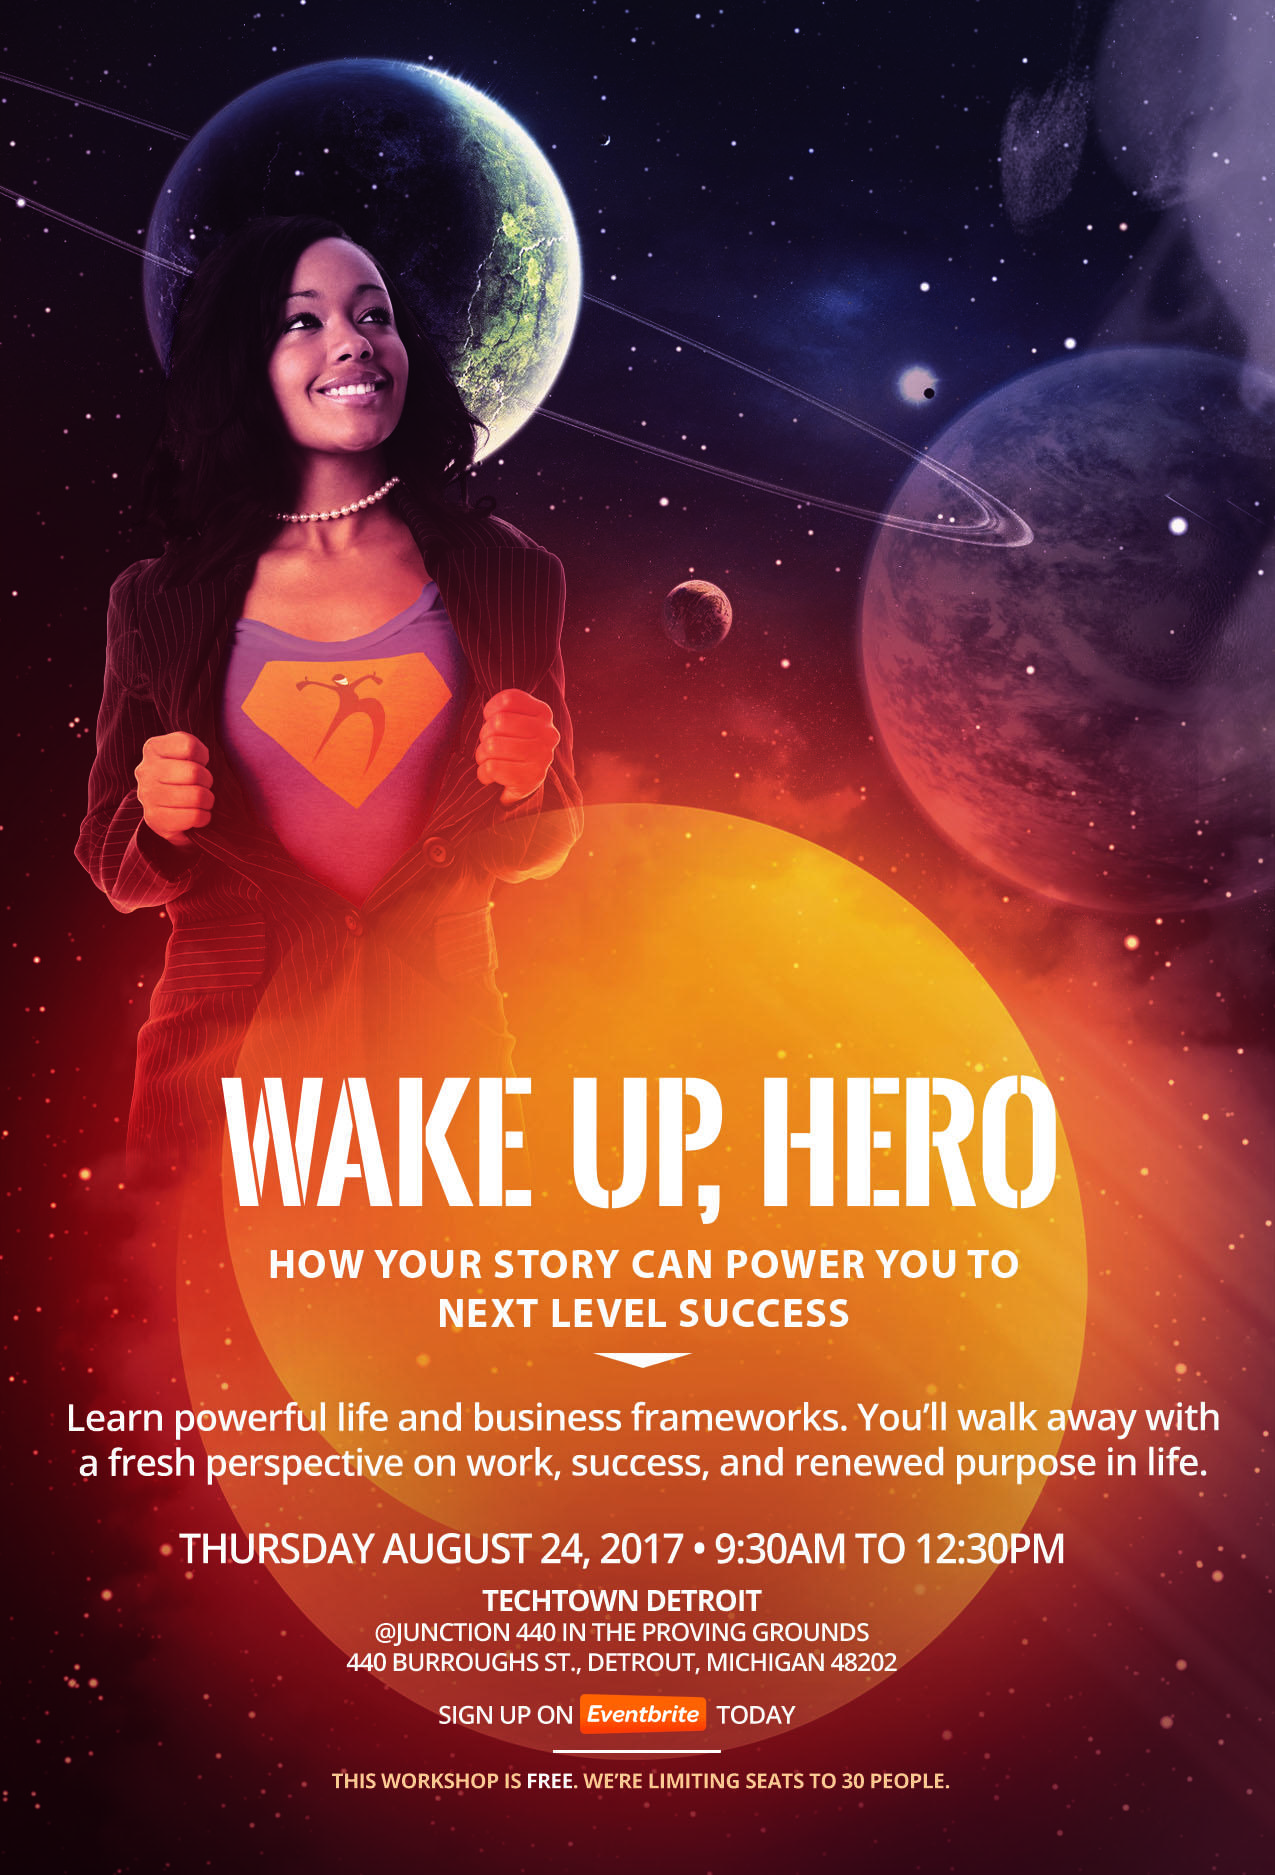 Wake up, hero: how your story can power you t